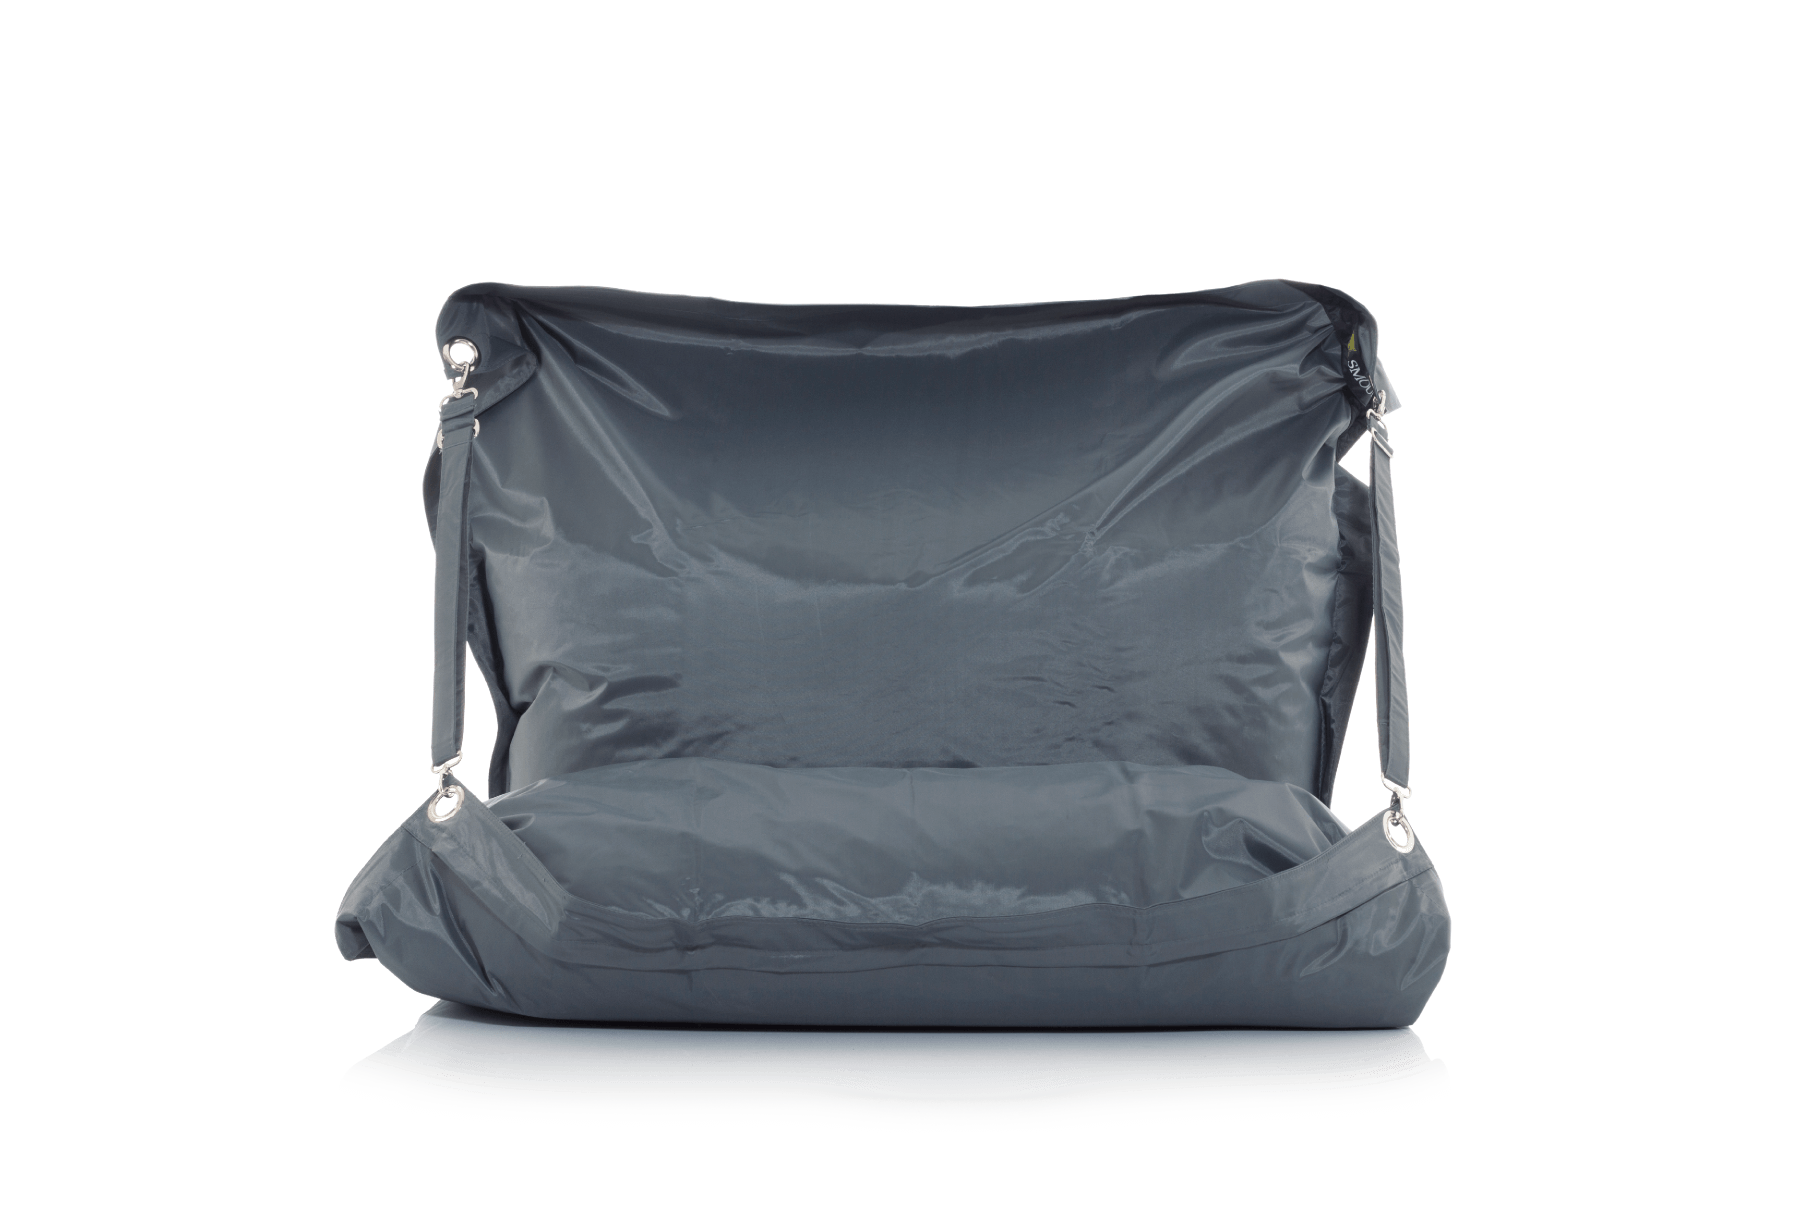 sitzsack outdoor supreme supreme outdoor sitzsack sitzkissen manufaktur smoothy made. Black Bedroom Furniture Sets. Home Design Ideas